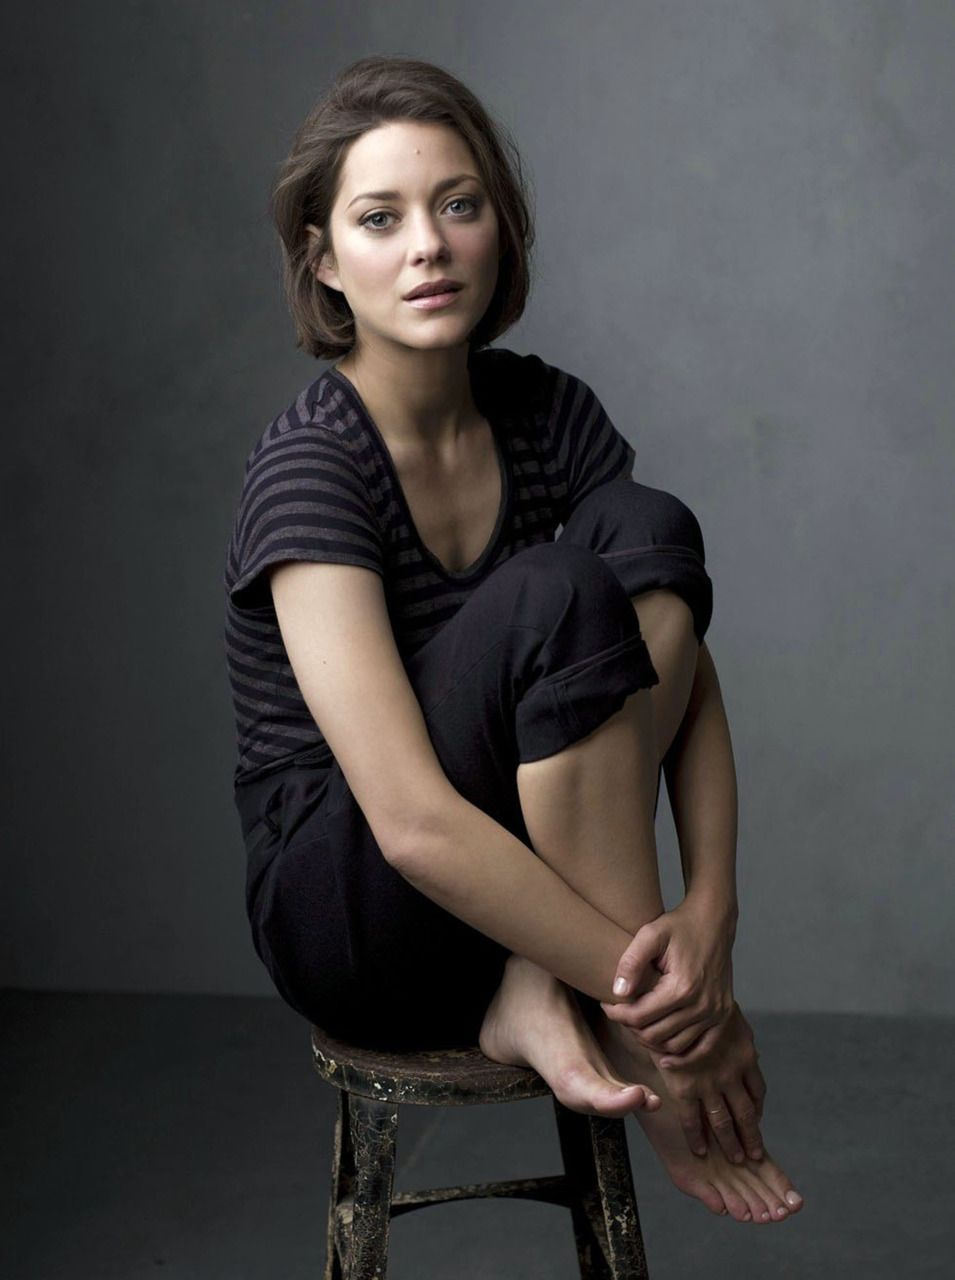 """marion cotillard / sometimes i want to cut my hair like this. September 30, 1975, 4:50 AM in:Paris 12e (France) Sun: 6°22' LibraAS: 14°06' Virgo Moon:27°22' CancerMC: 9°49' Gemini Dominants: Libra, Virgo, Cancer Mercury, Neptune, Moon Houses 2, 11, 4 / Air, Fire / Cardinal Chinese Astrology: Wood Cat Numerology: Birthpath 7 Height: Marion Cotillard is 5' 6½"""" (1m69) tall"""